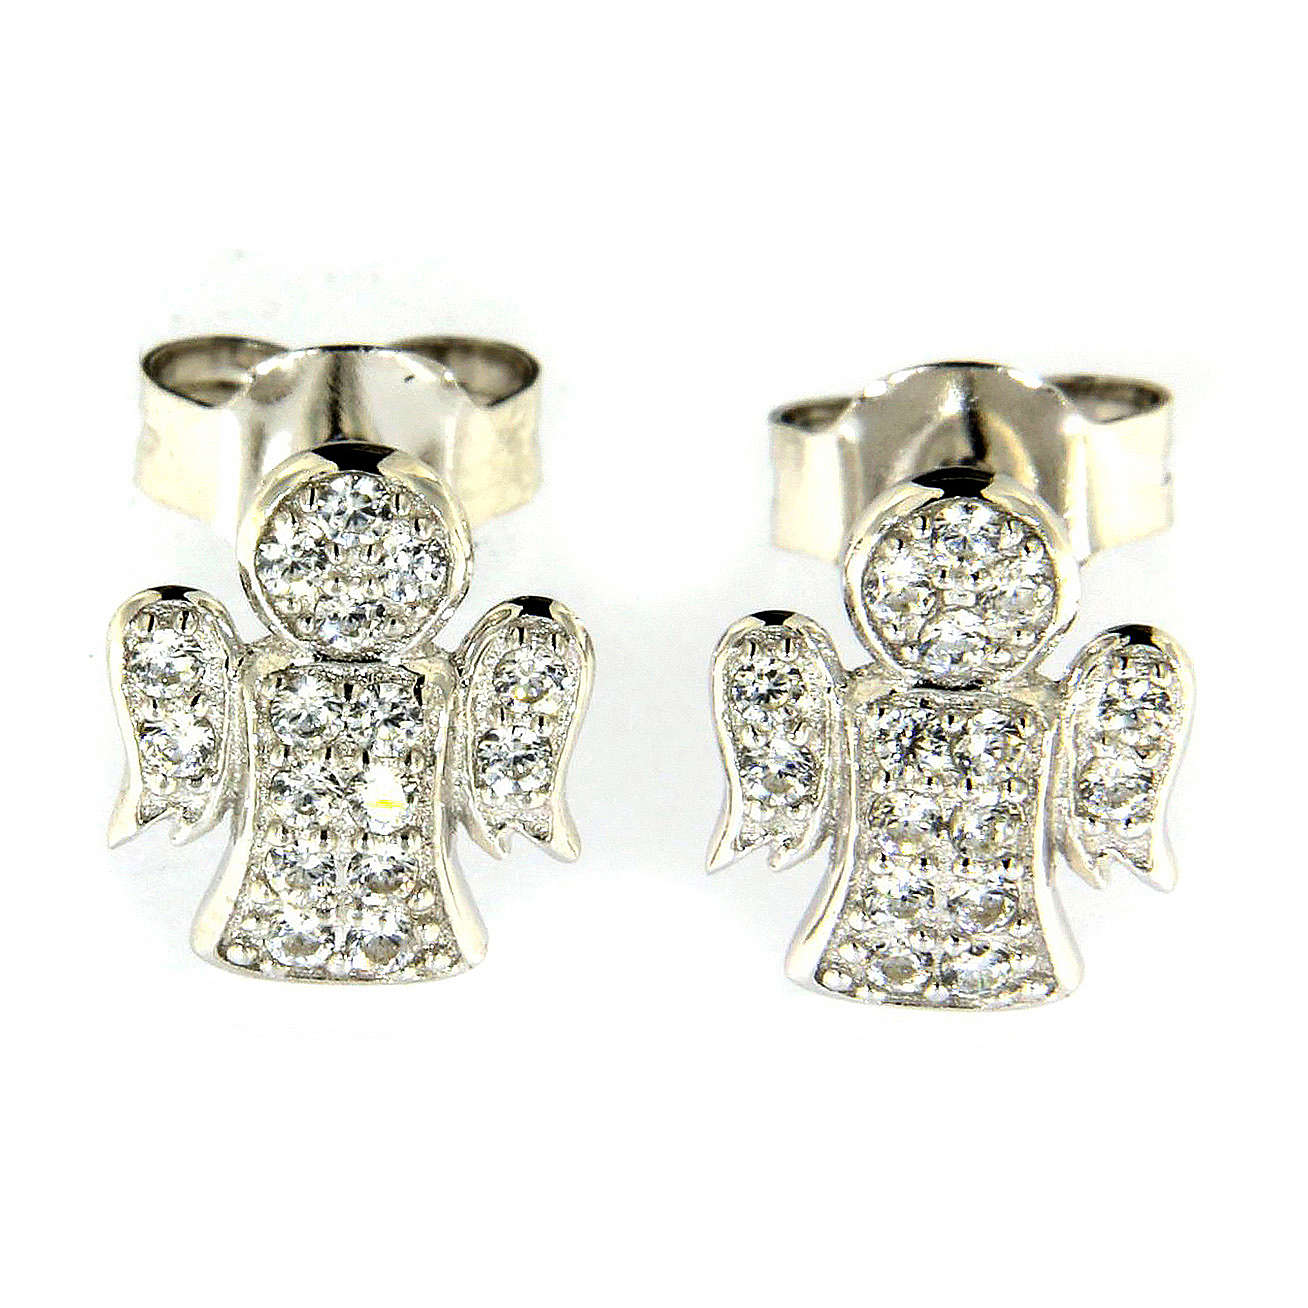 AMEN earrings in 925 sterling silver finished in rhodium with zircons 4